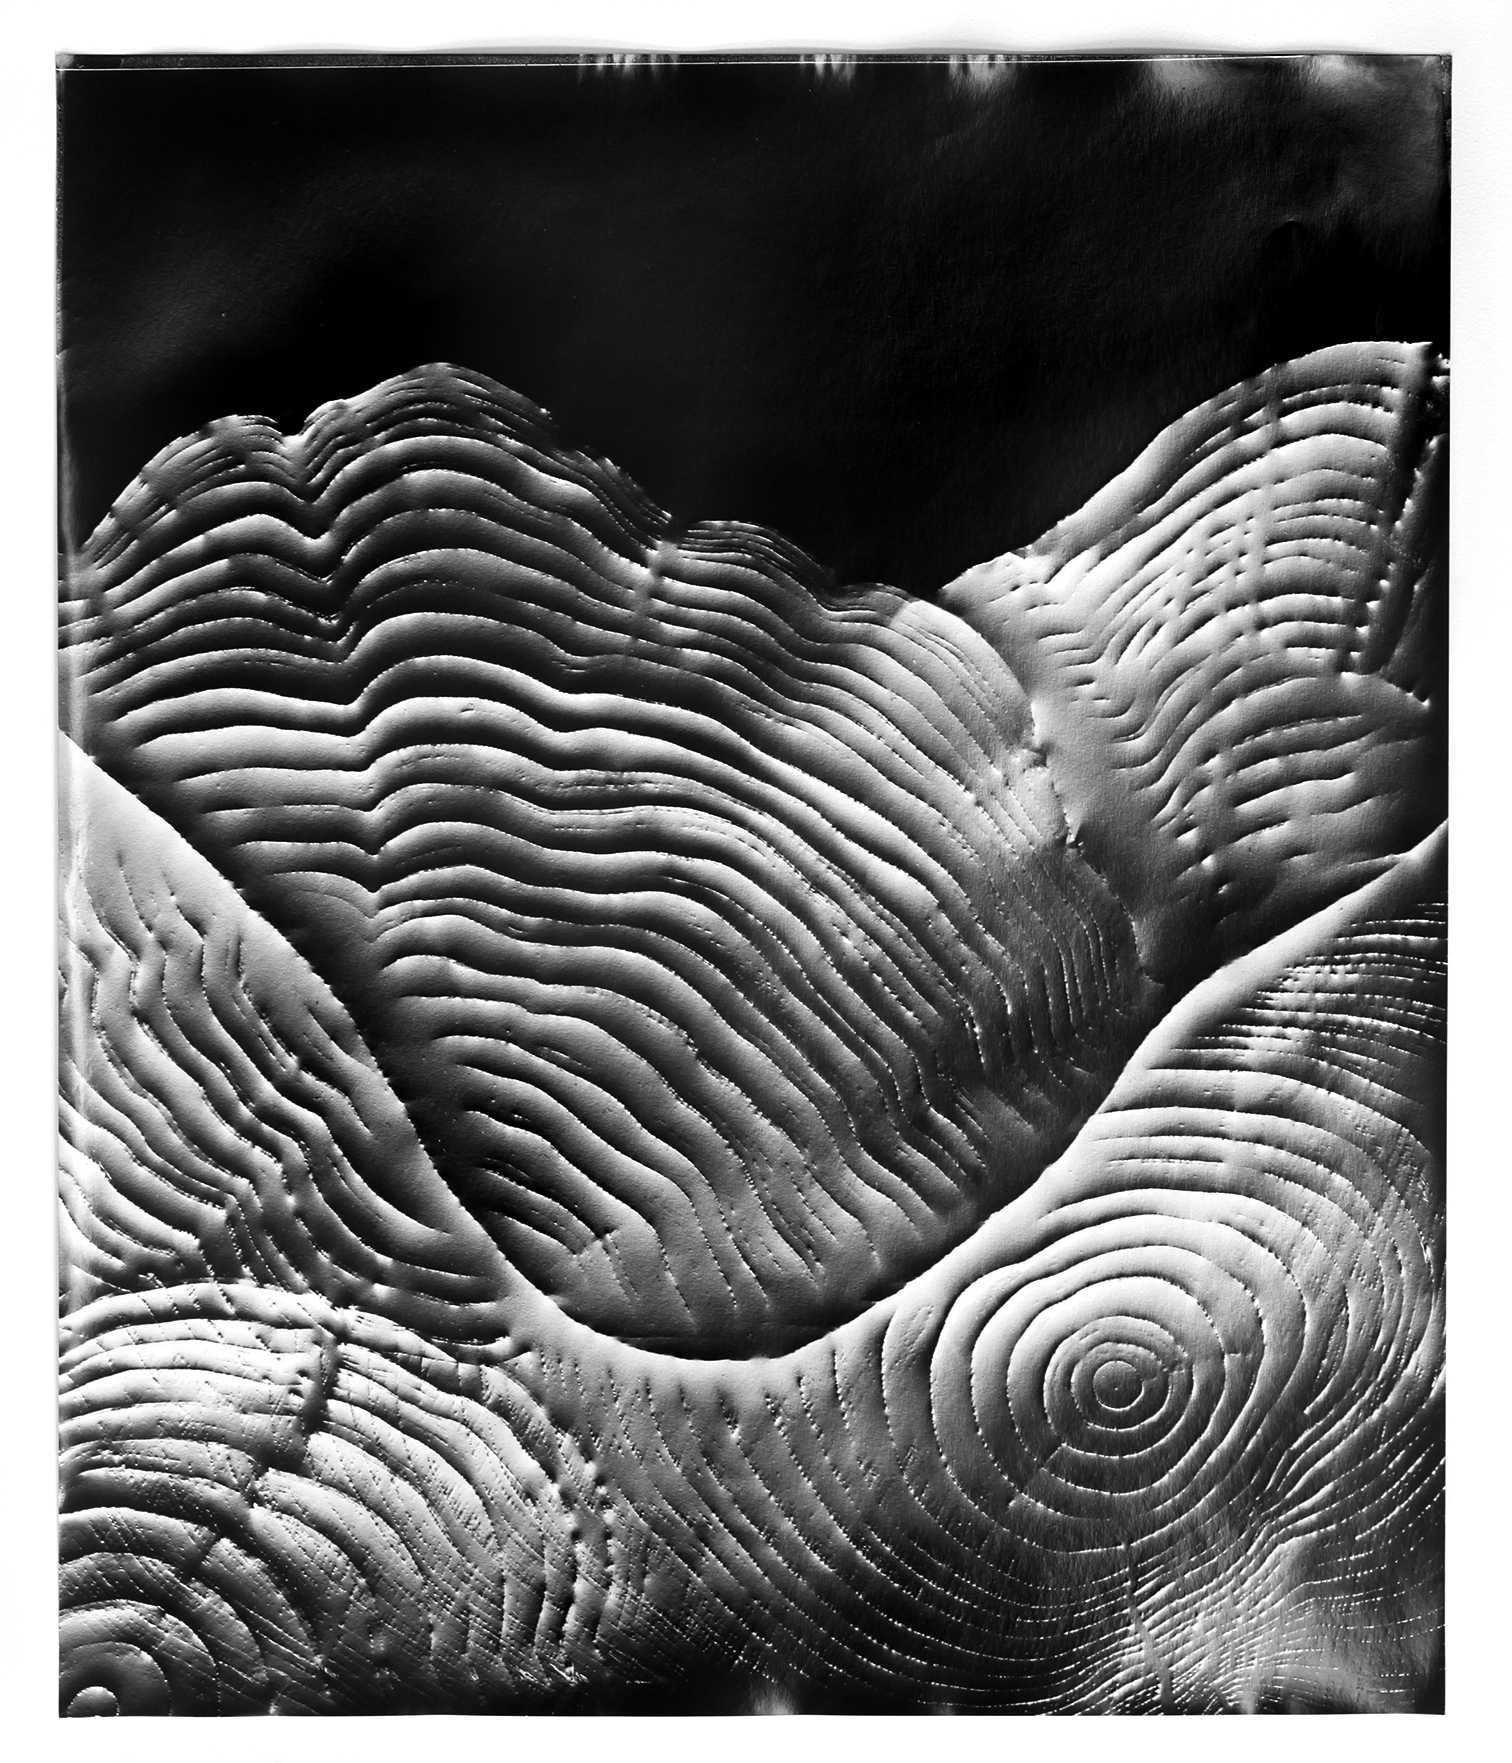 KLEA McKENNA Automatic Earth #75, 2017 Photographic rubbing. Unique gelatin silver photogram. 24 x 20 in.